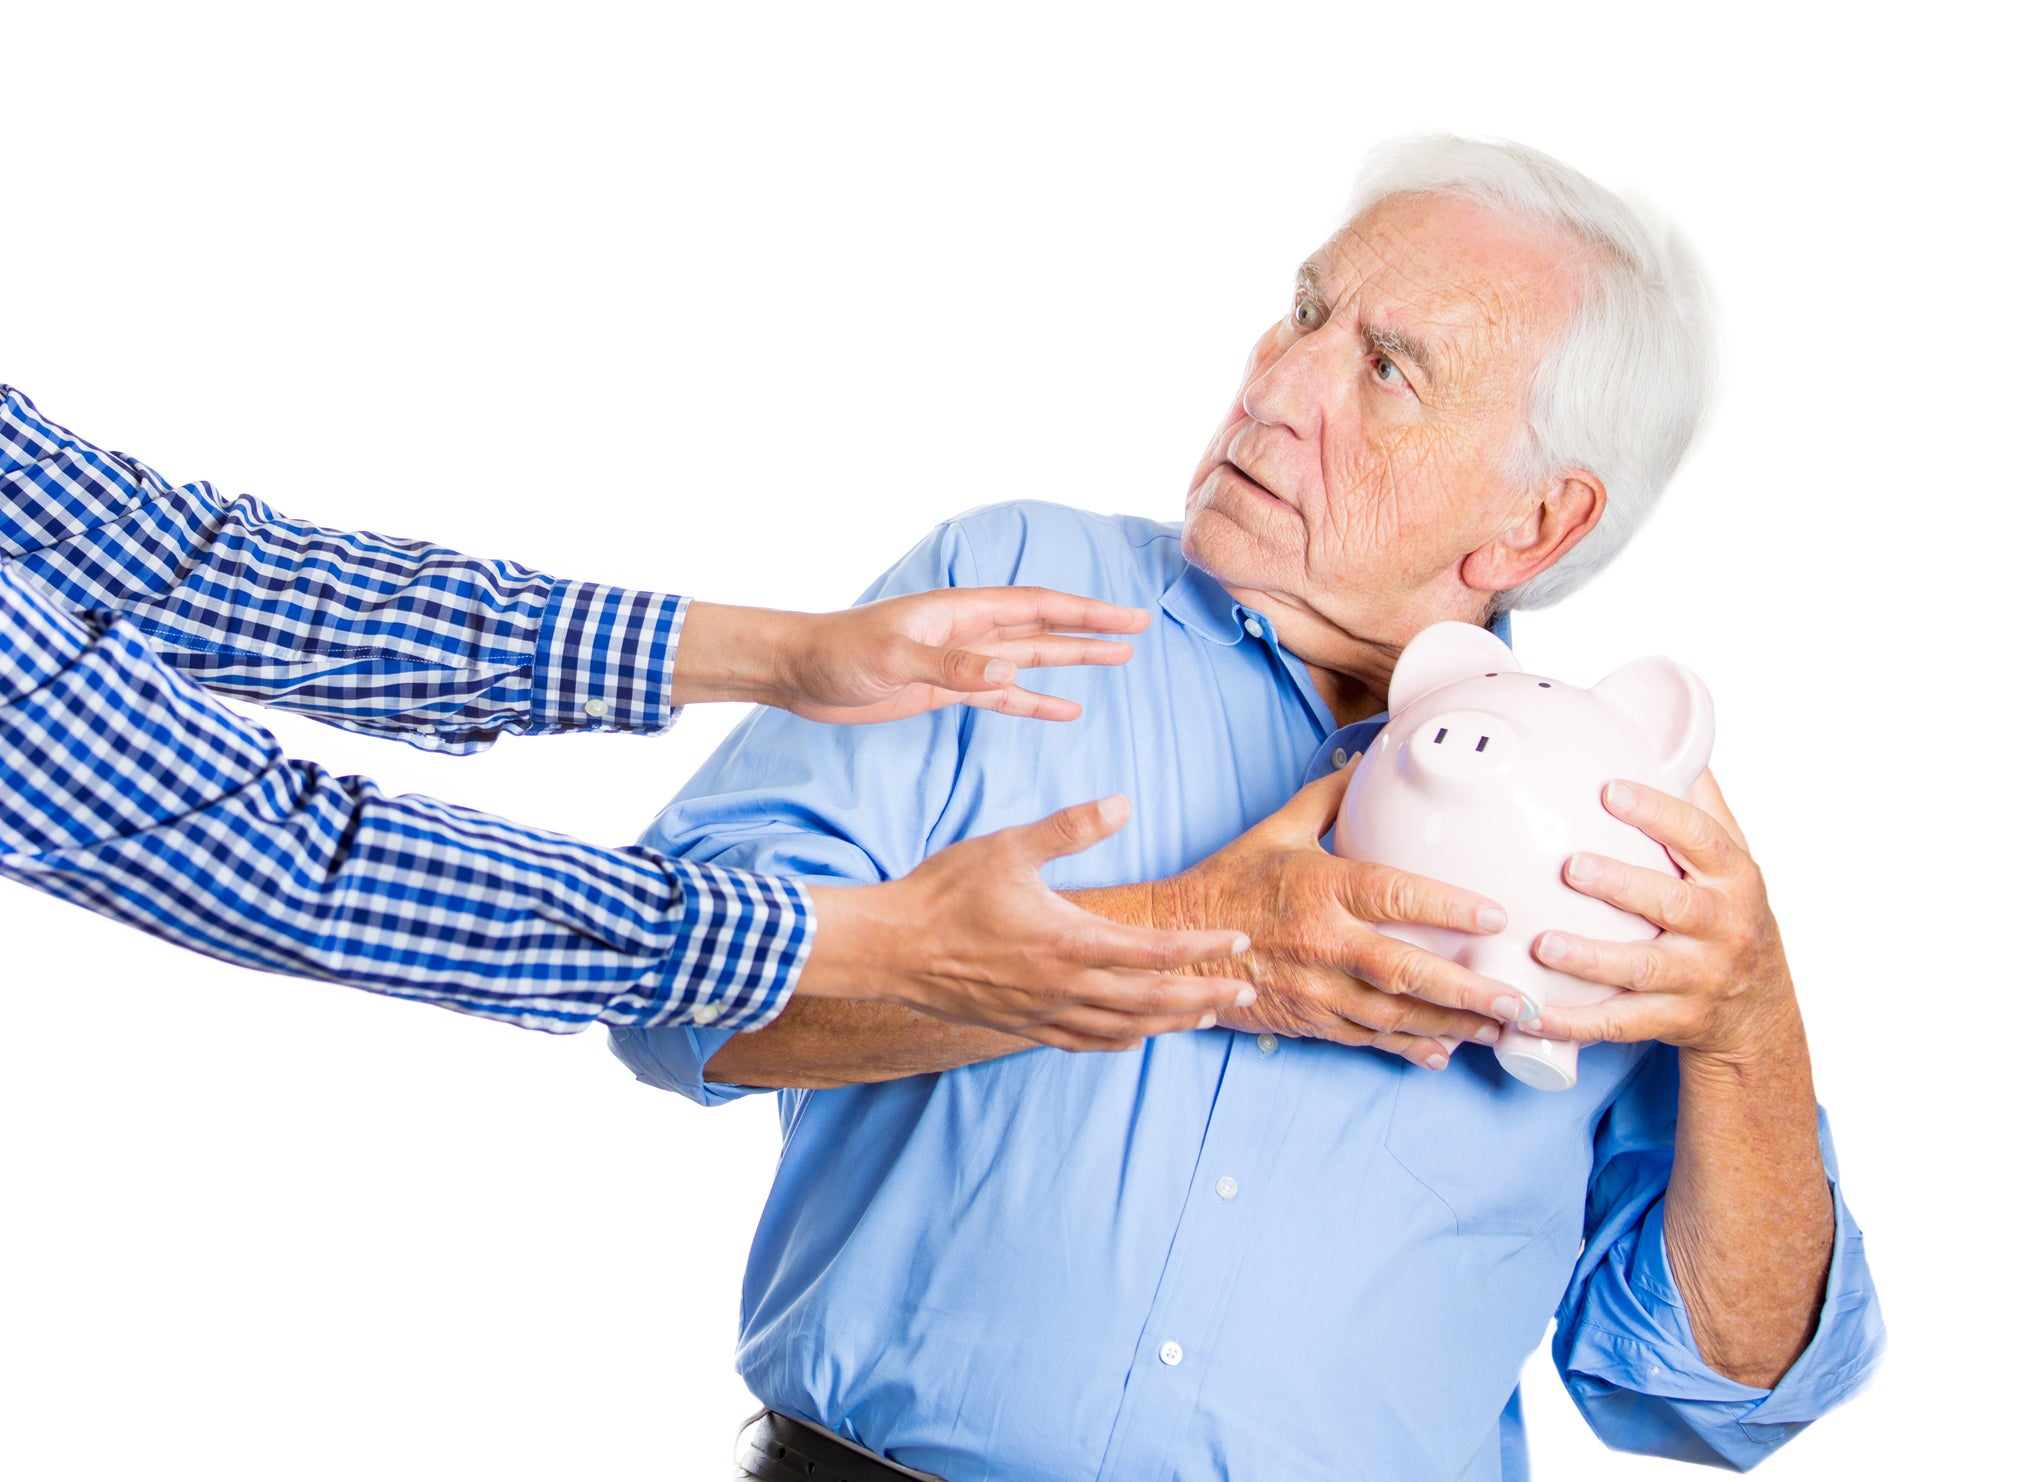 Thinking of Claiming Social Security? Be Prepared for Less Than the $3,895 Maximum